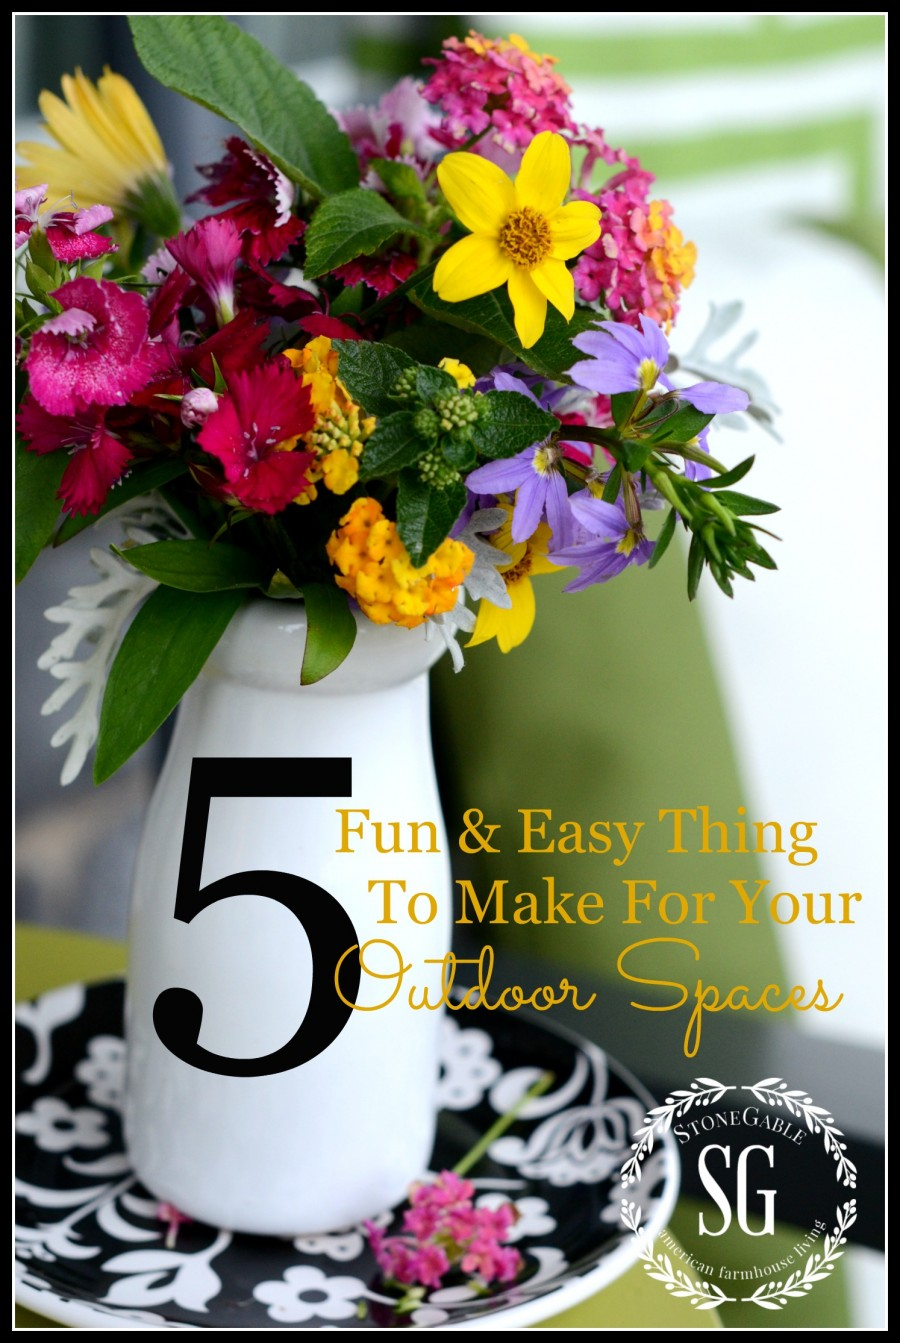 5 FUN AND EASY THINGS TO MAKE FOR YOUR OUTDOOR SPACES